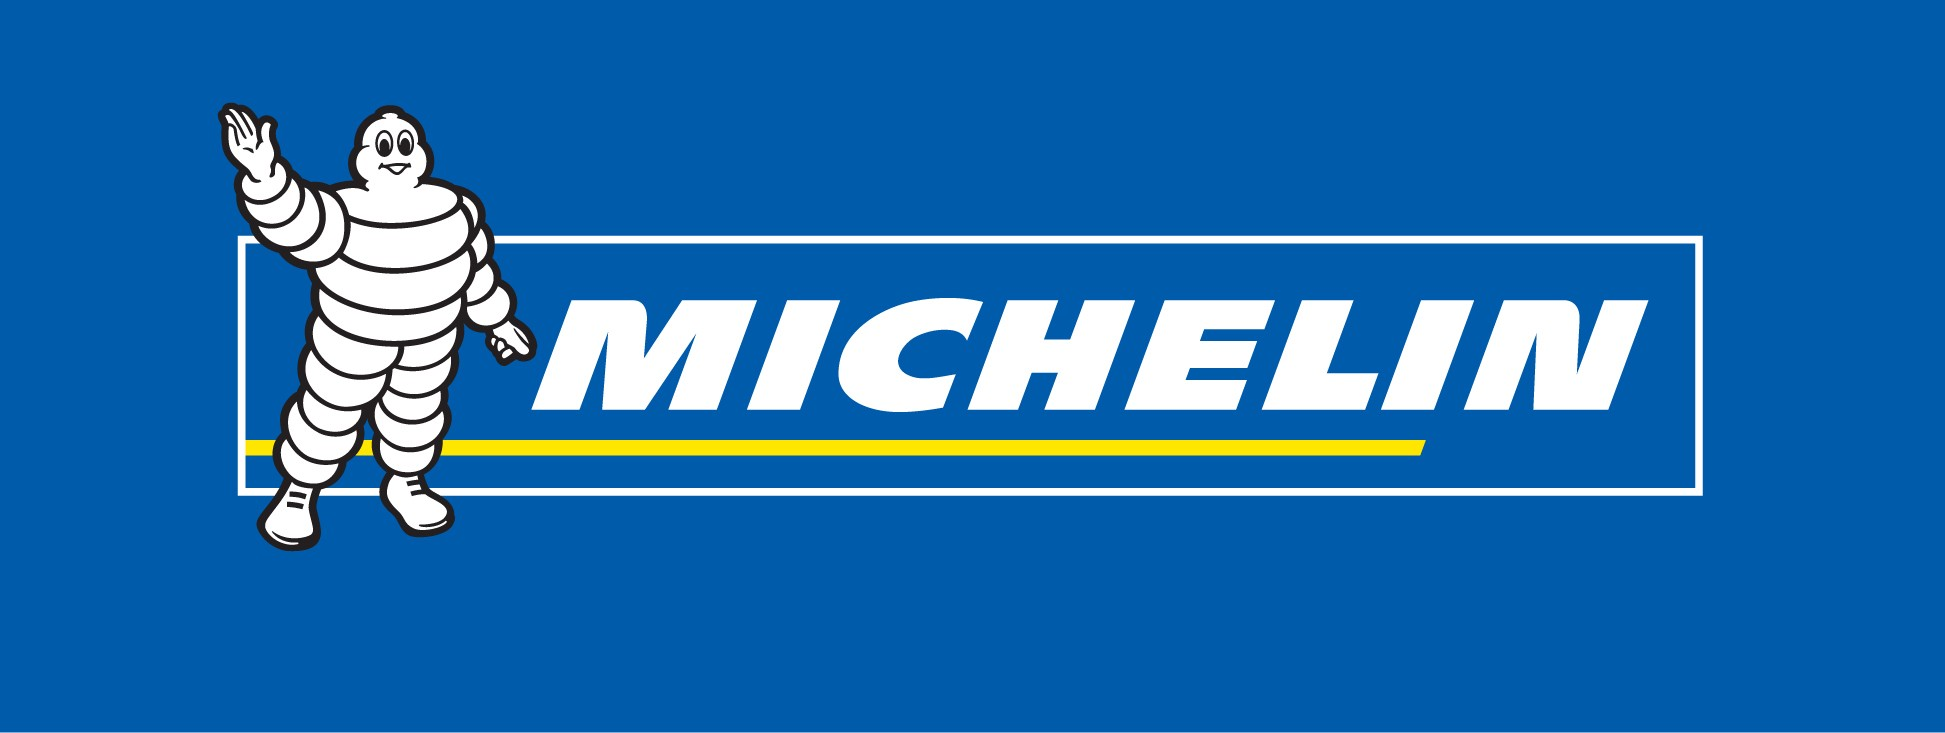 michelin-logo-.jpg